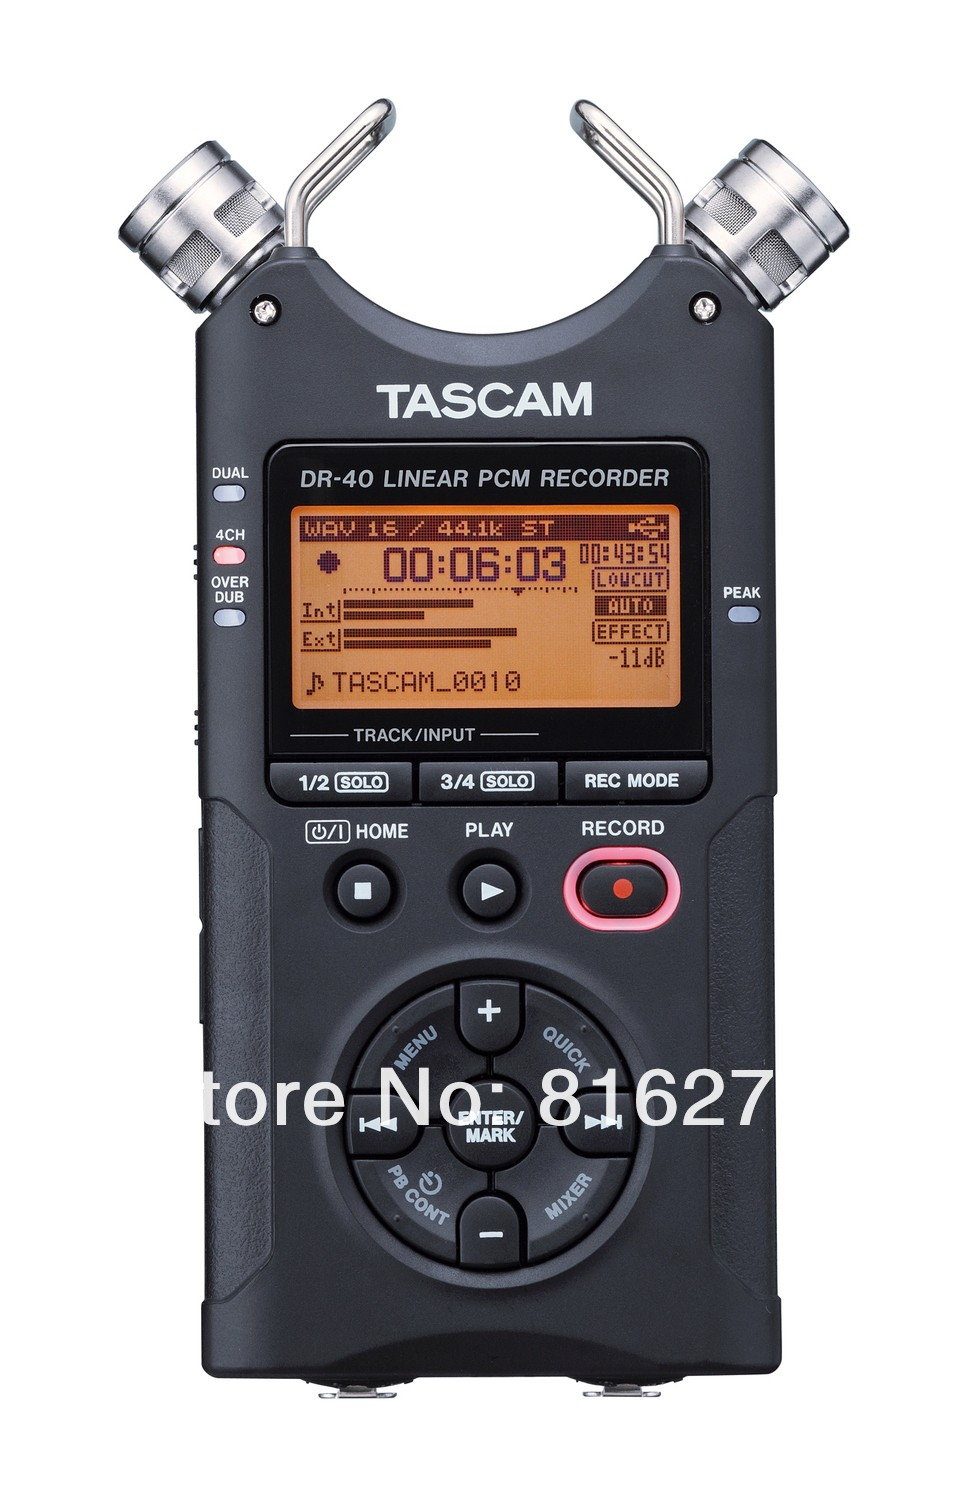 Hot selling Tascam dr-40 handheld digital voice recorder professional recording pen original brand Wholesale Promotions Fine(China (Mainland))